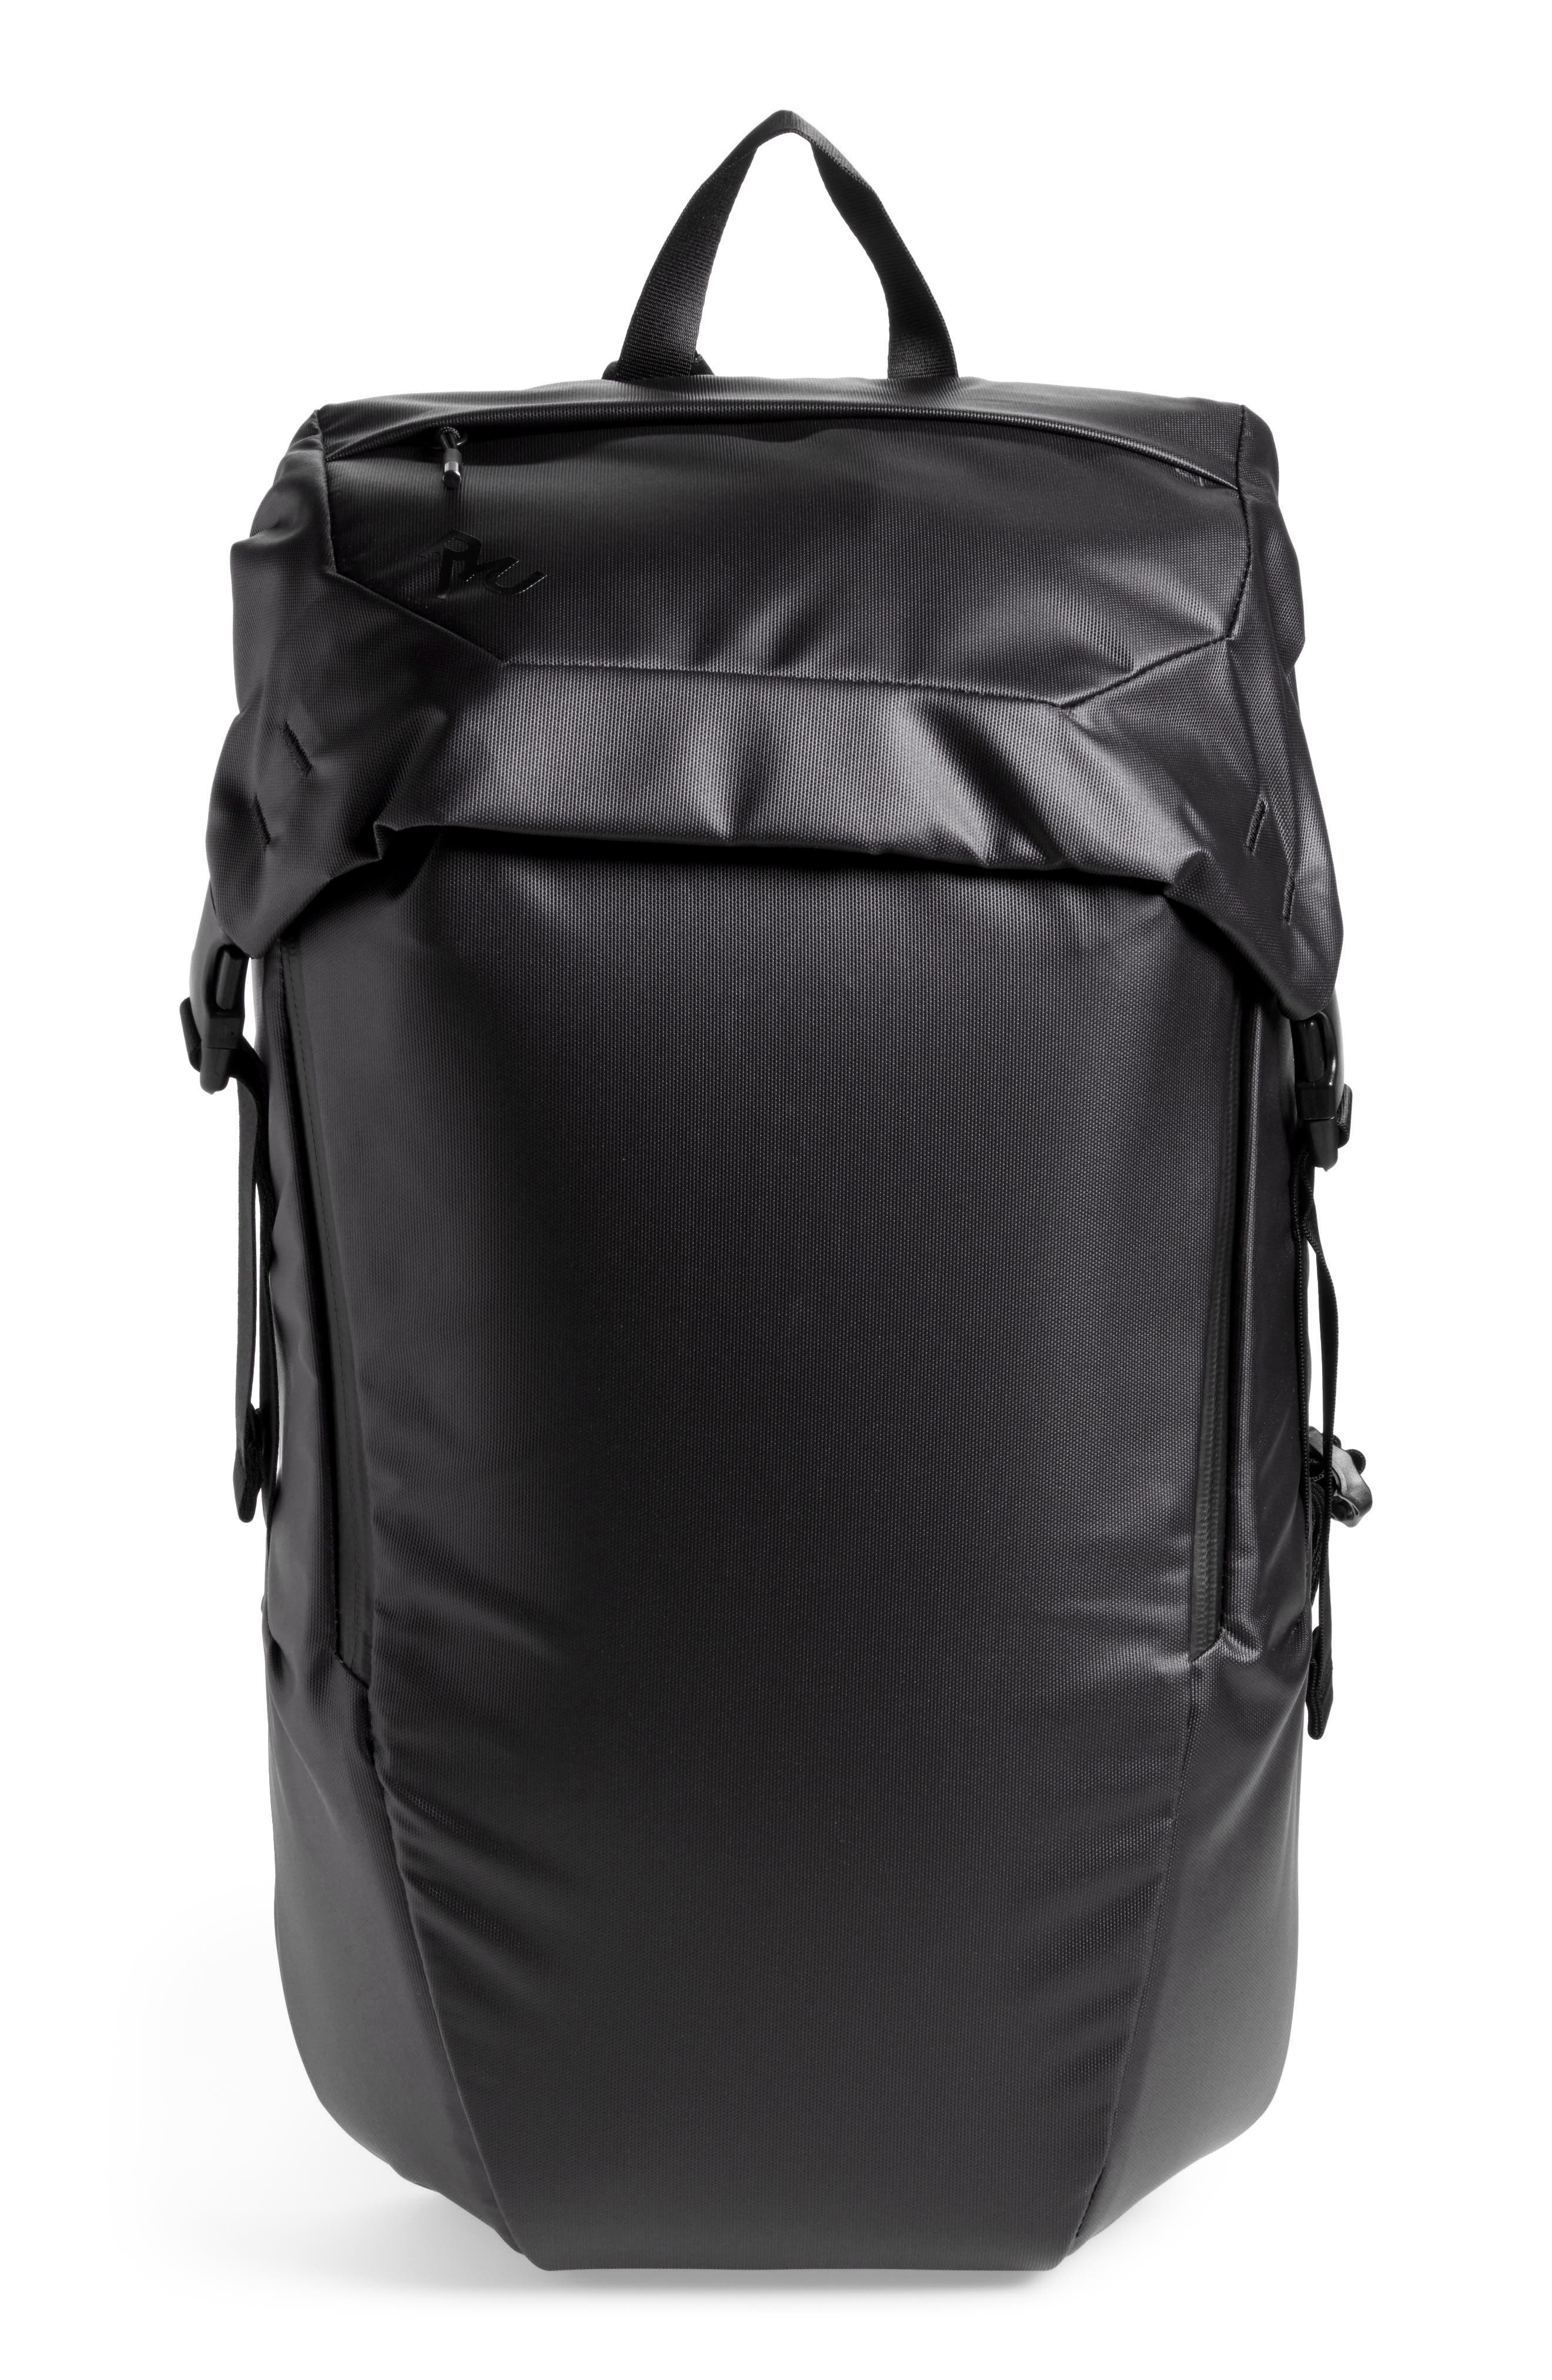 Quick Pack Backpack by Ryu